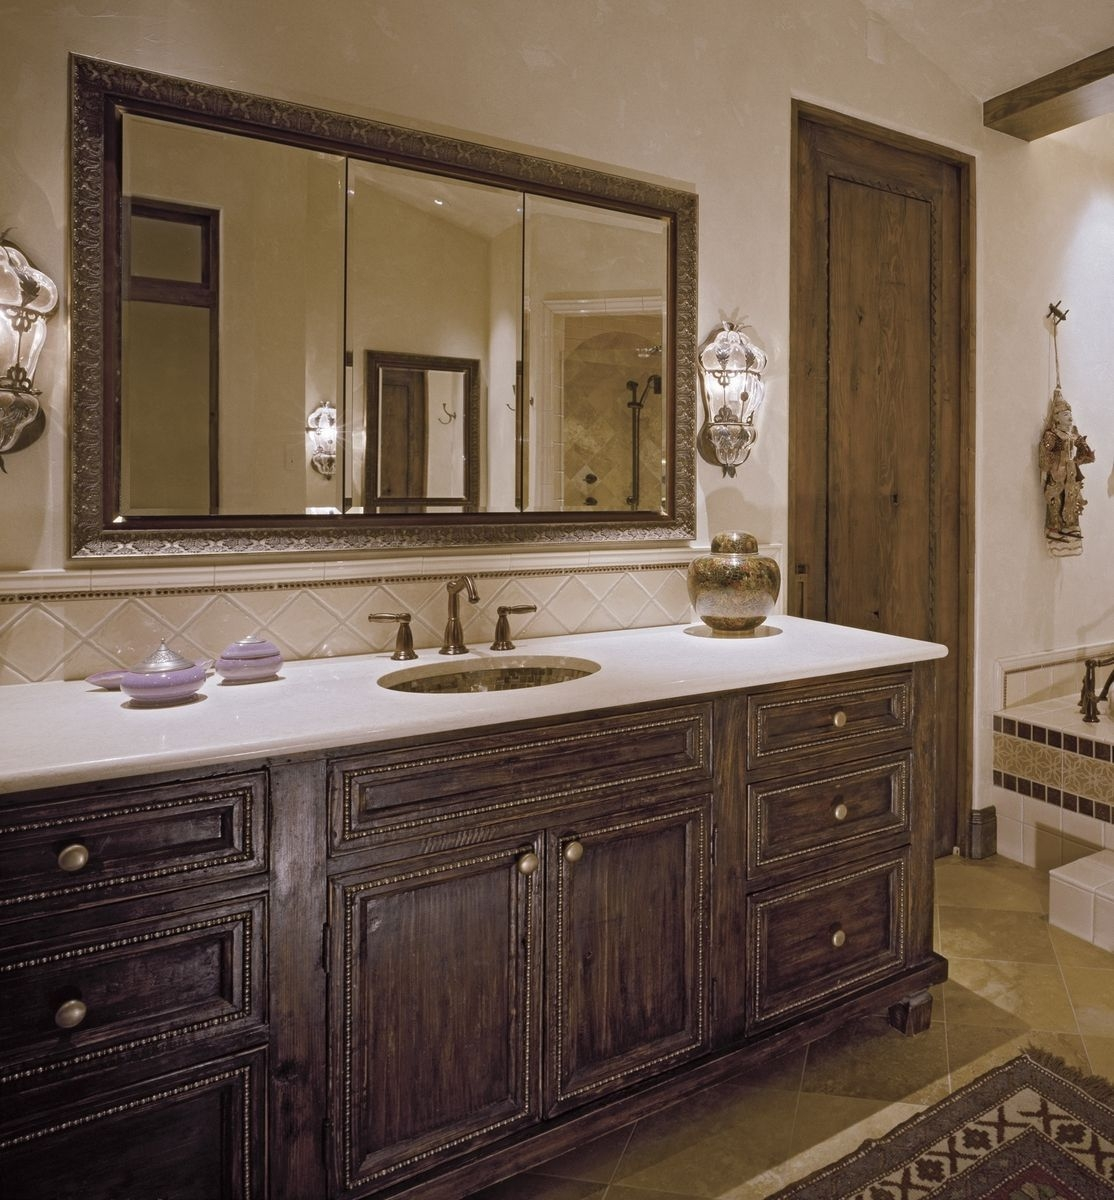 Custom Bathroom Cabinetry  Master Bathtilde Design Studio  Custommade